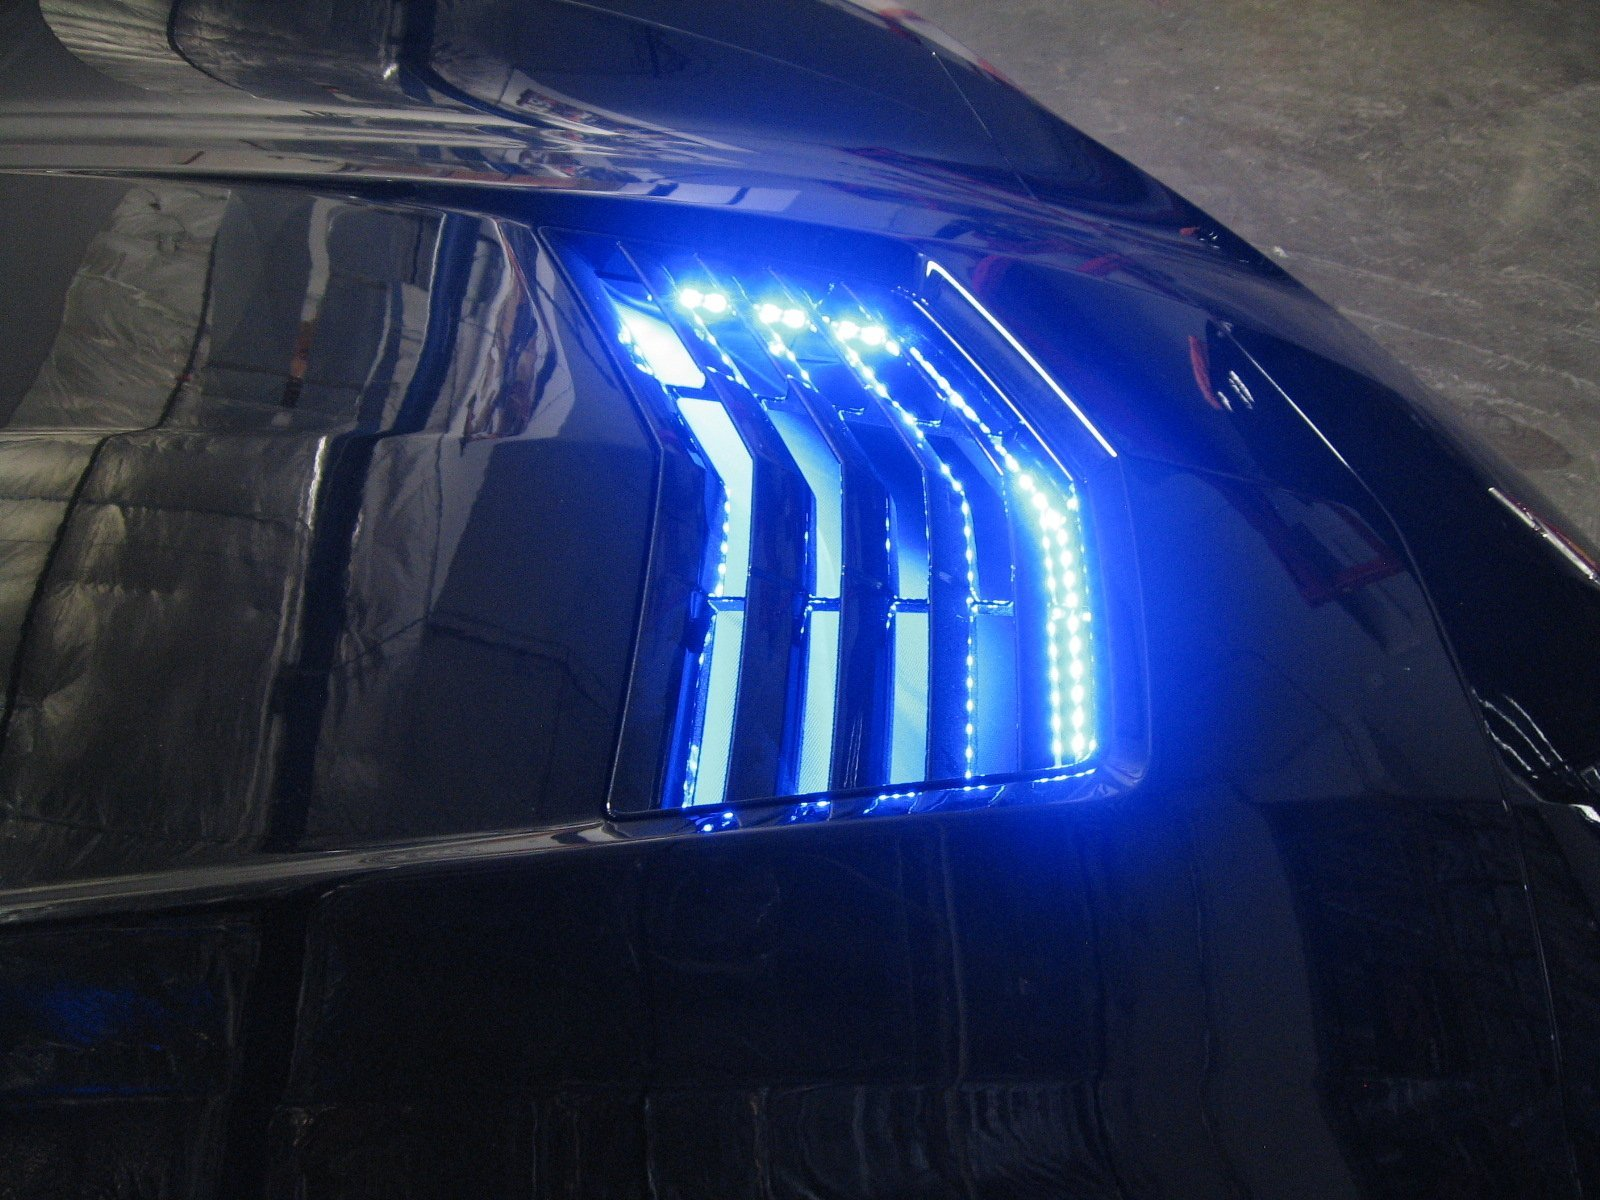 Lighting Rgb 2014 2019 C7 Corvette Rgb Complete Exterior Led Lighting Kit With Key Fob Control